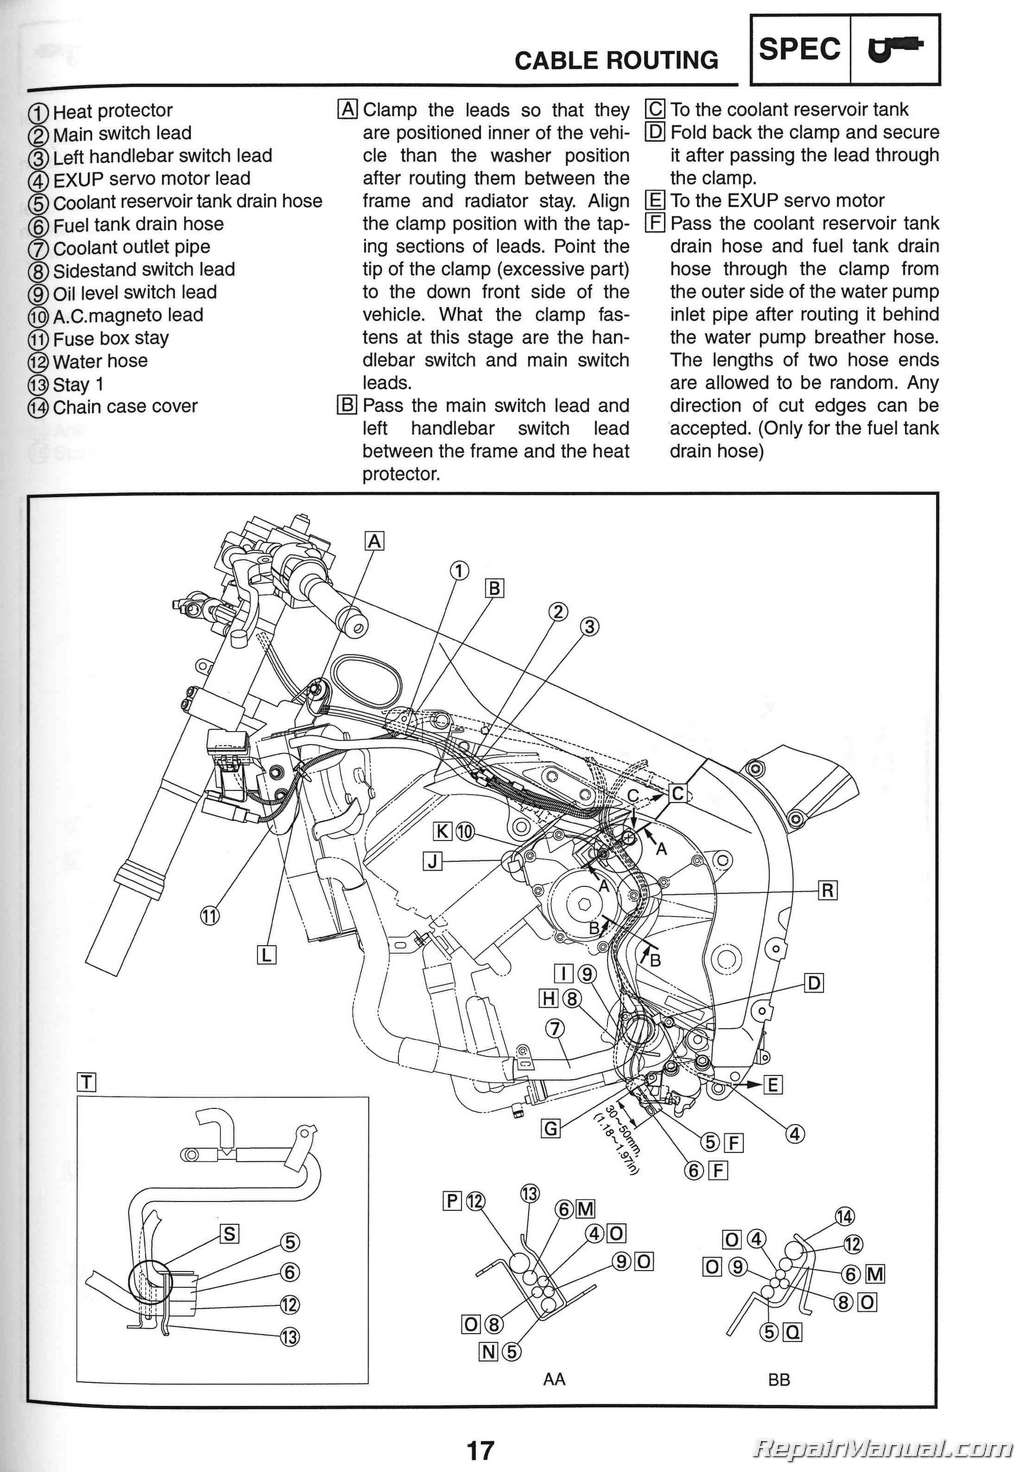 Yamaha Sr185 Ignition Wiring Best Secret Diagram Yzf600r